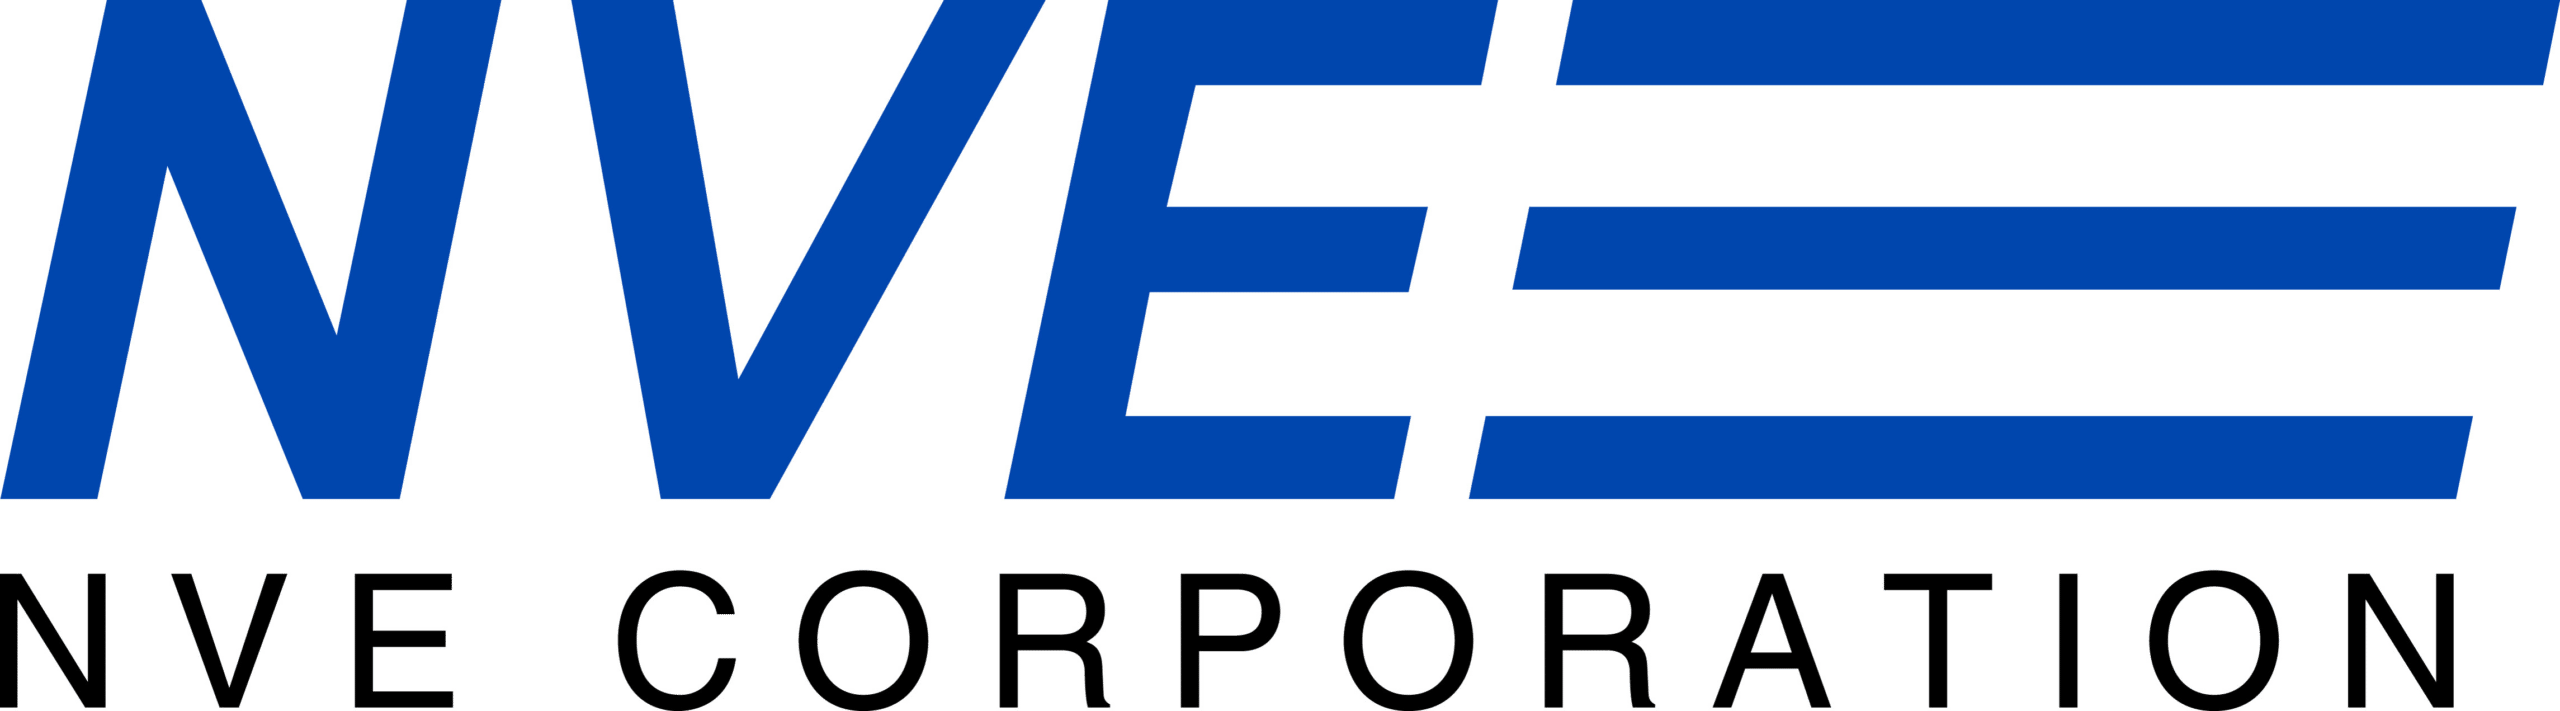 NVE Corporation Company Logo 2020